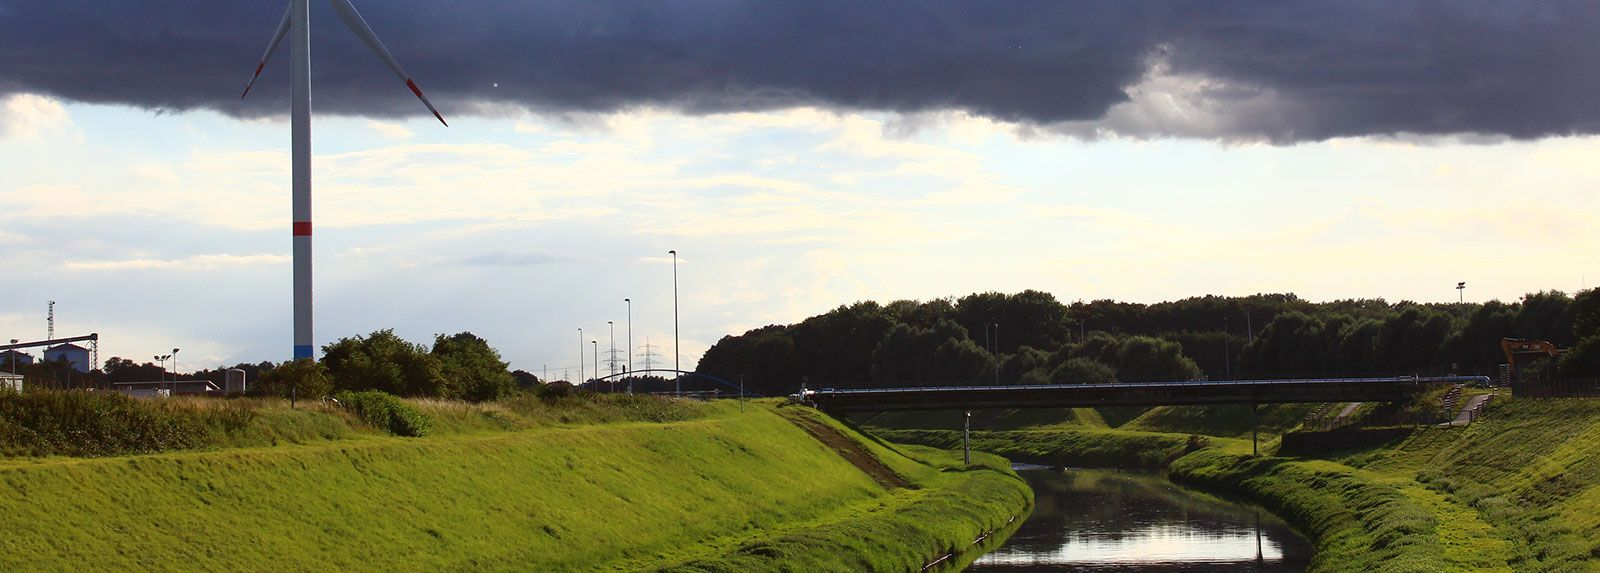 Wind Turbine Beside Canal And Bridge